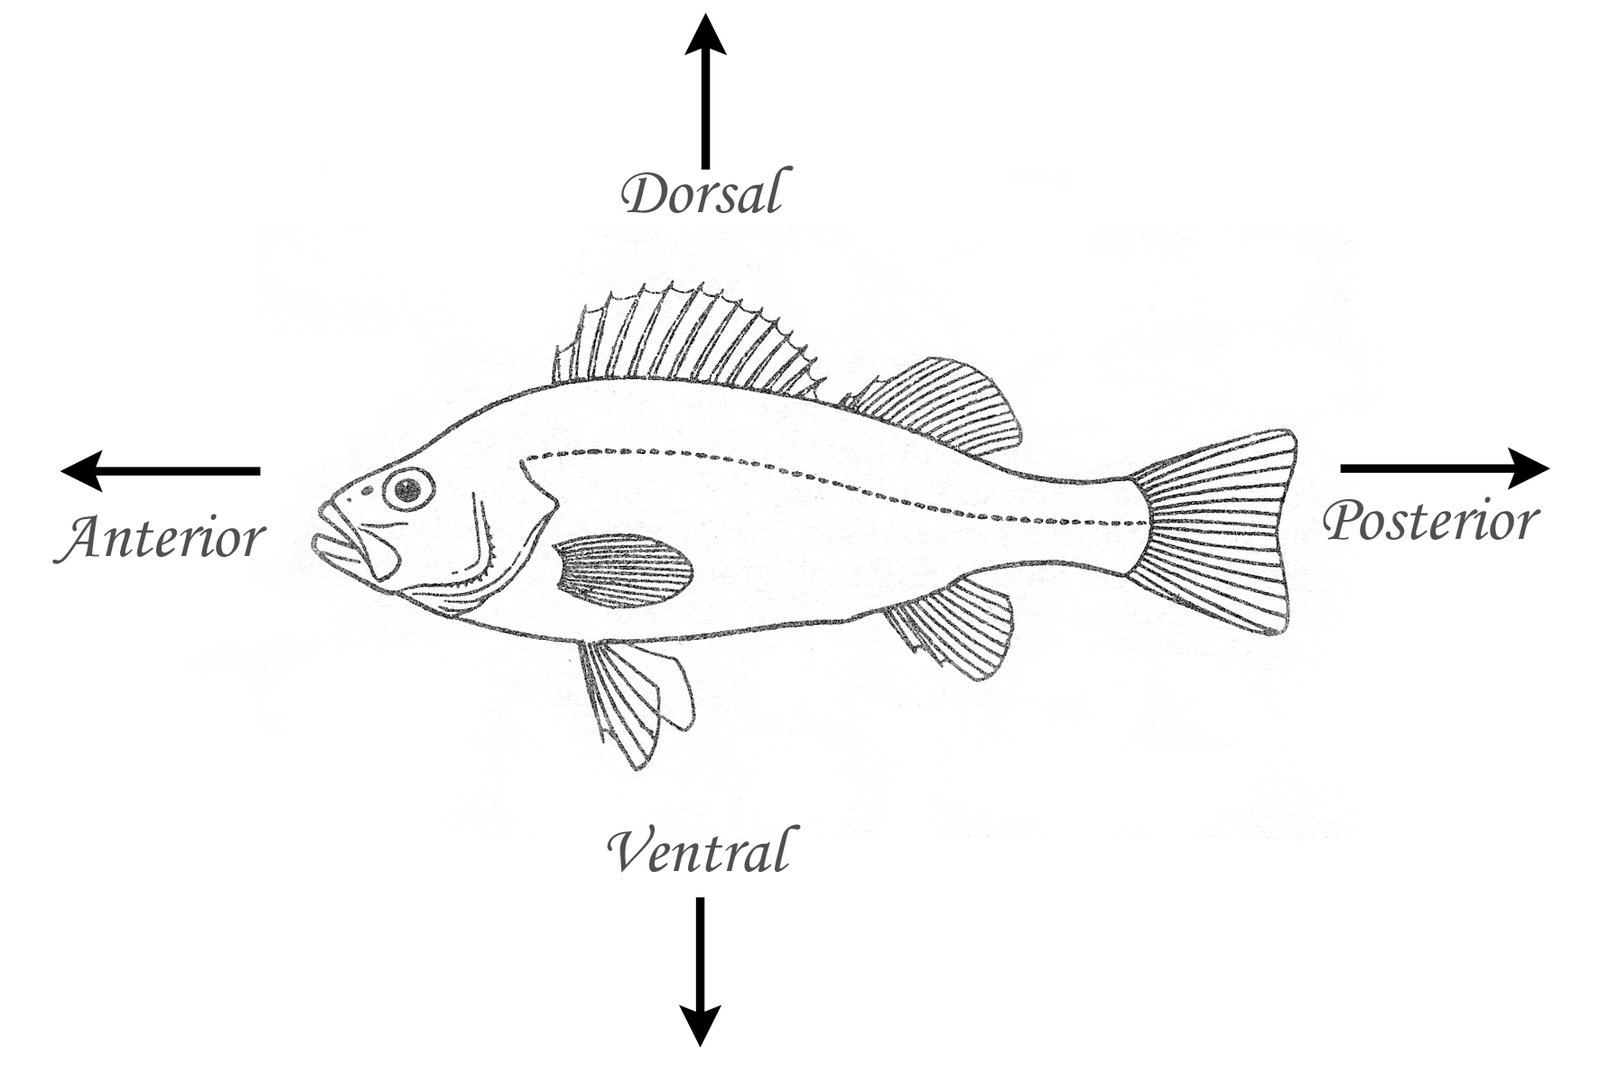 Fish with dorsal, ventral, anterior, posterior labelled